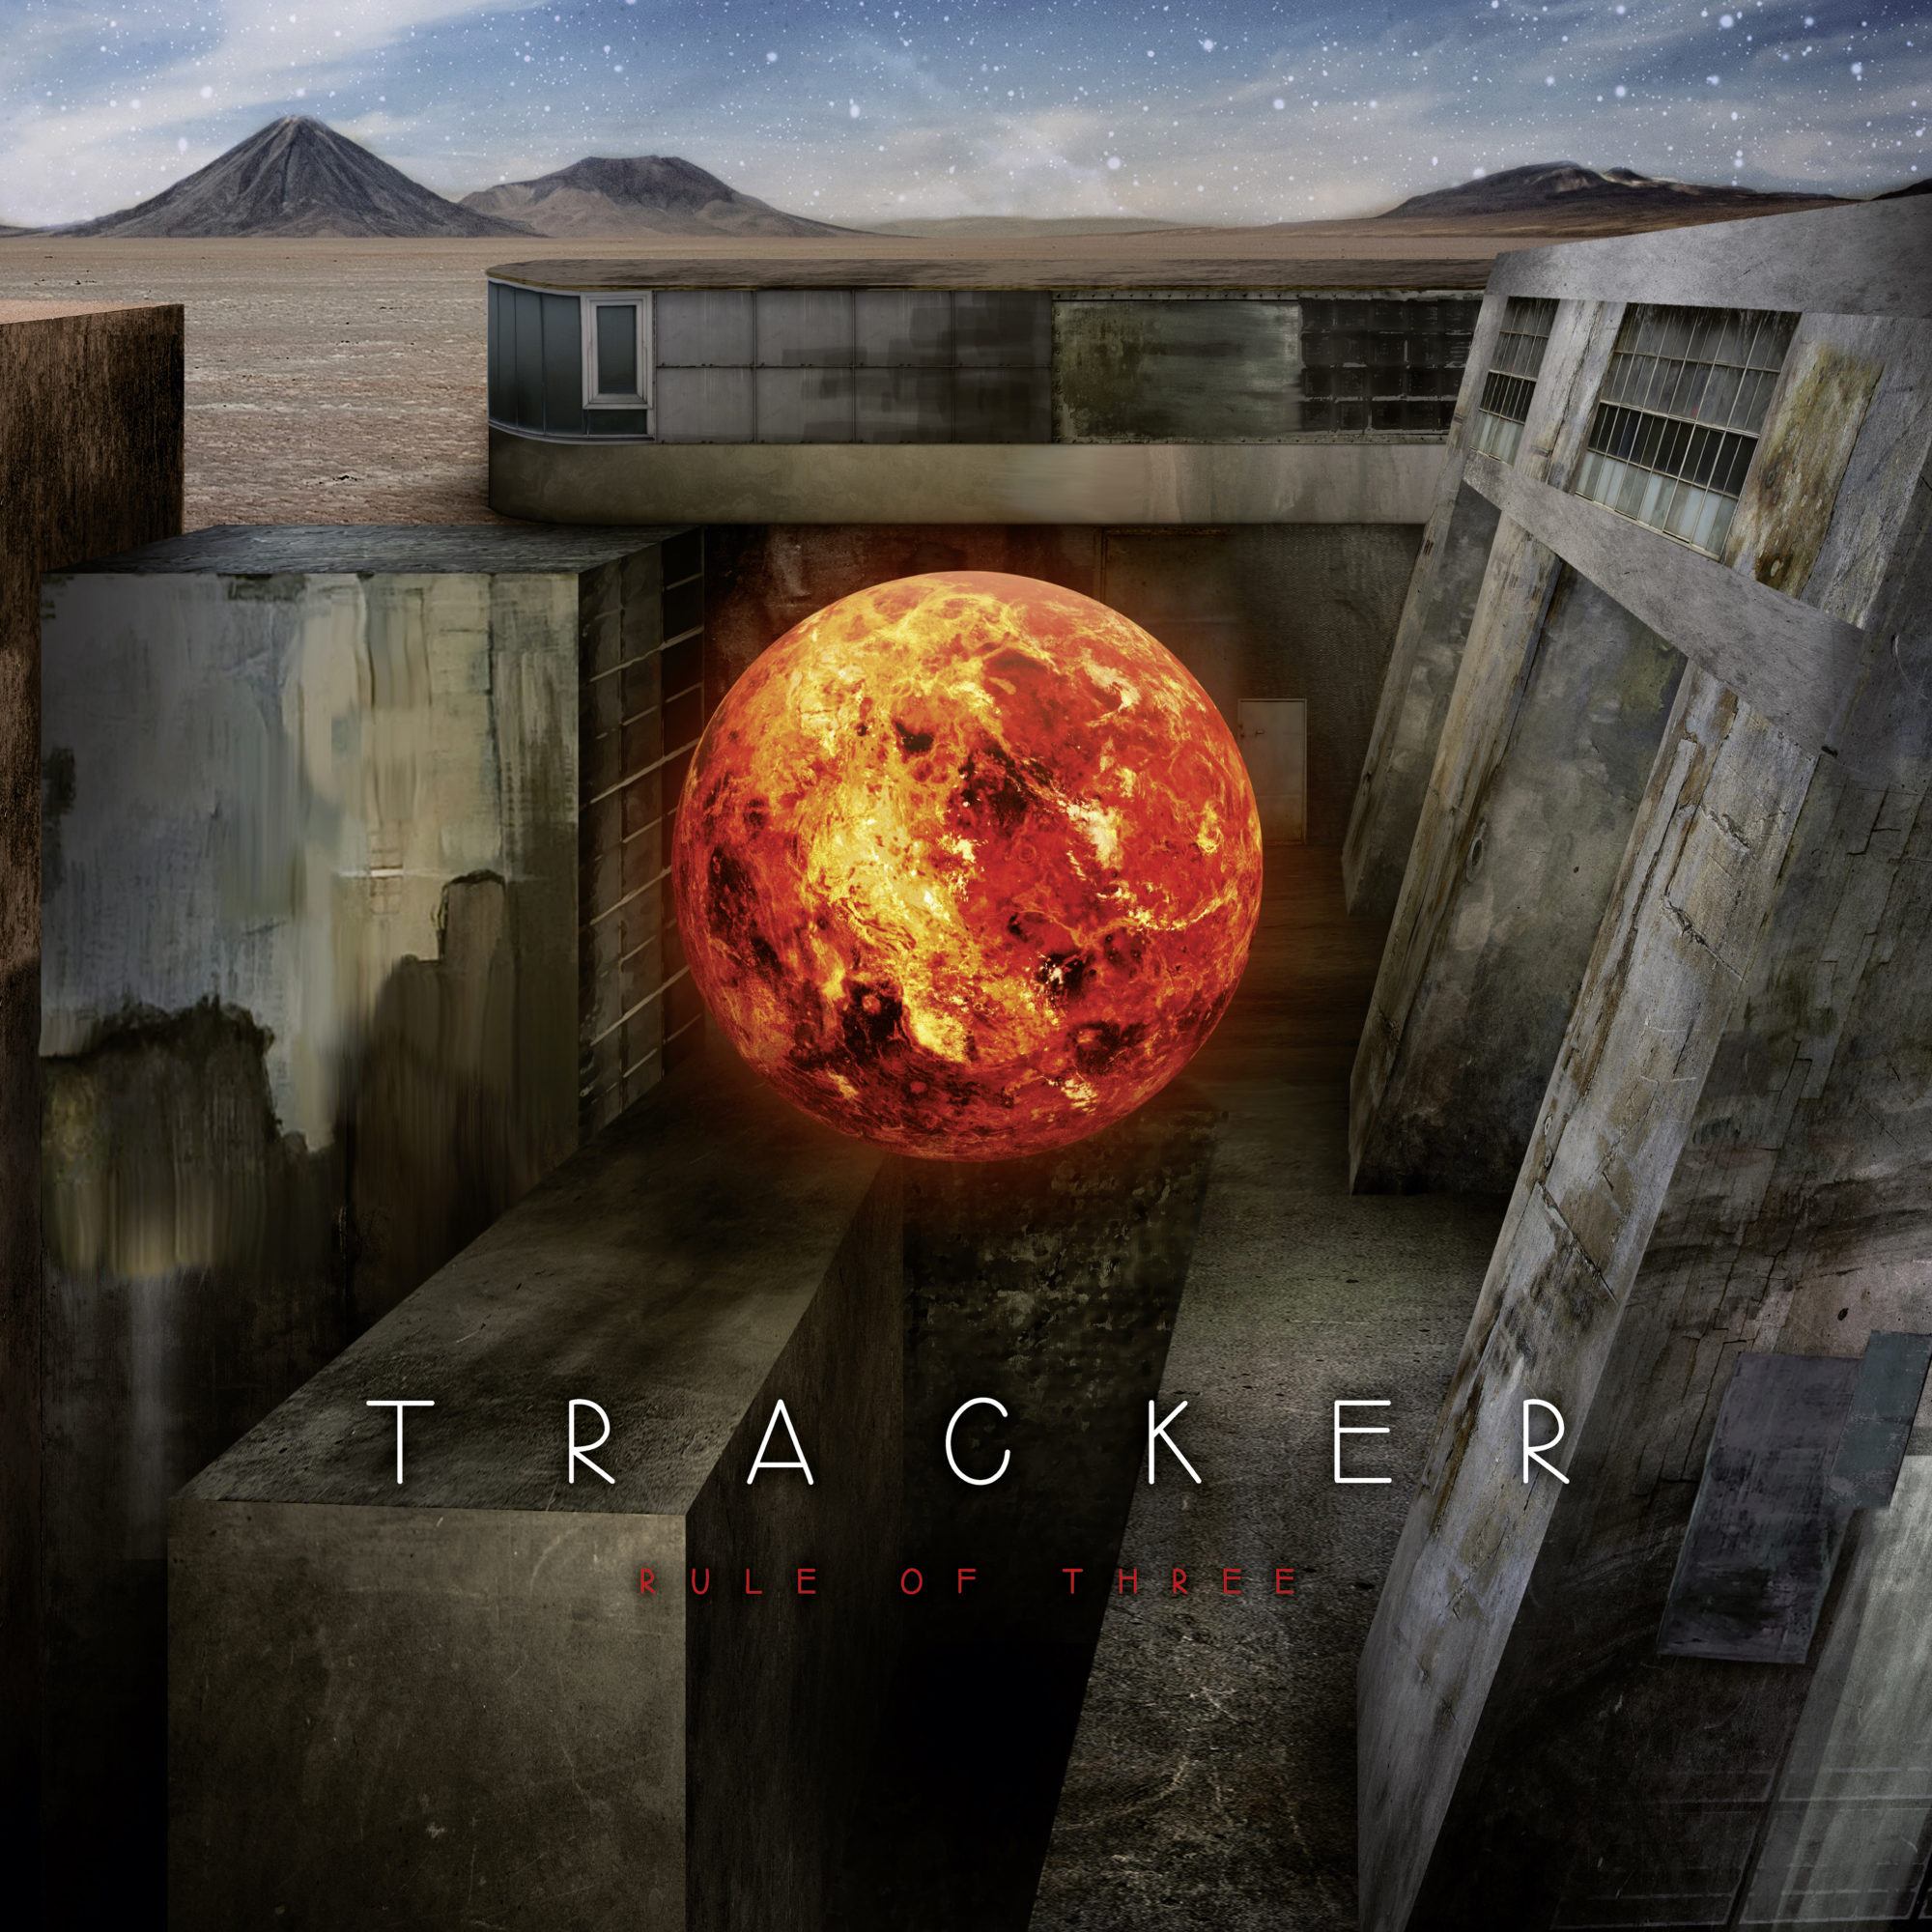 Tracker Band Music Rule of Three Album Cover Artwork Austria